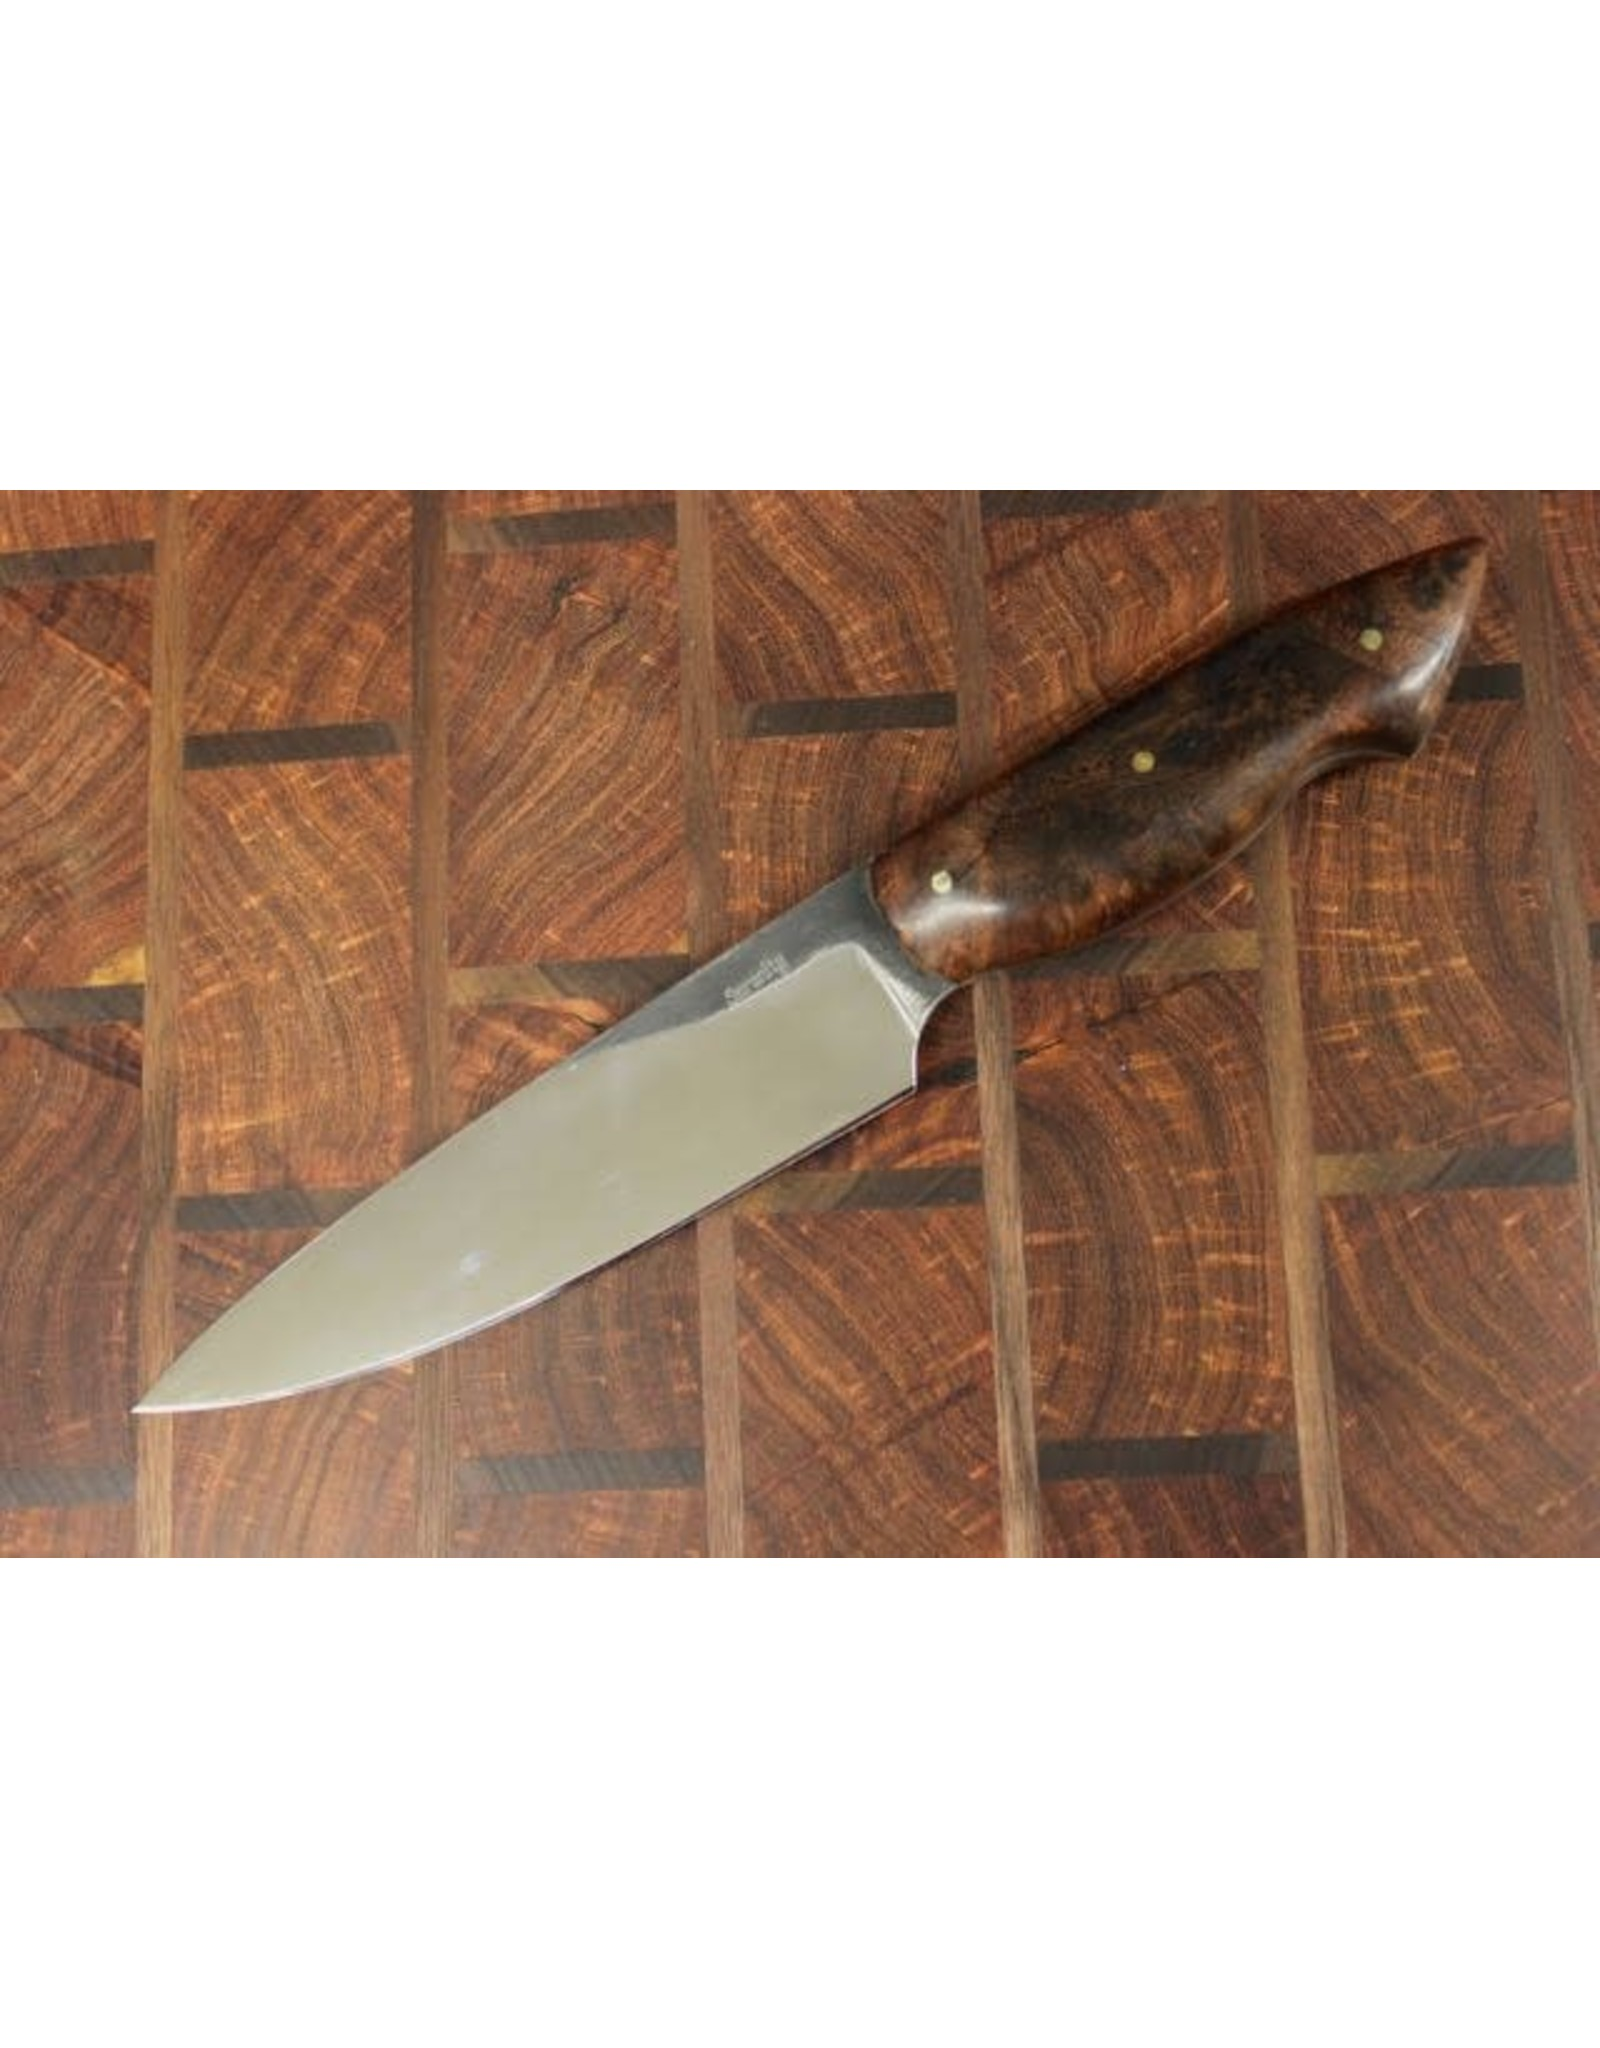 Serenity Mesquite Kitchen Knife Set: CPM154 Stainless